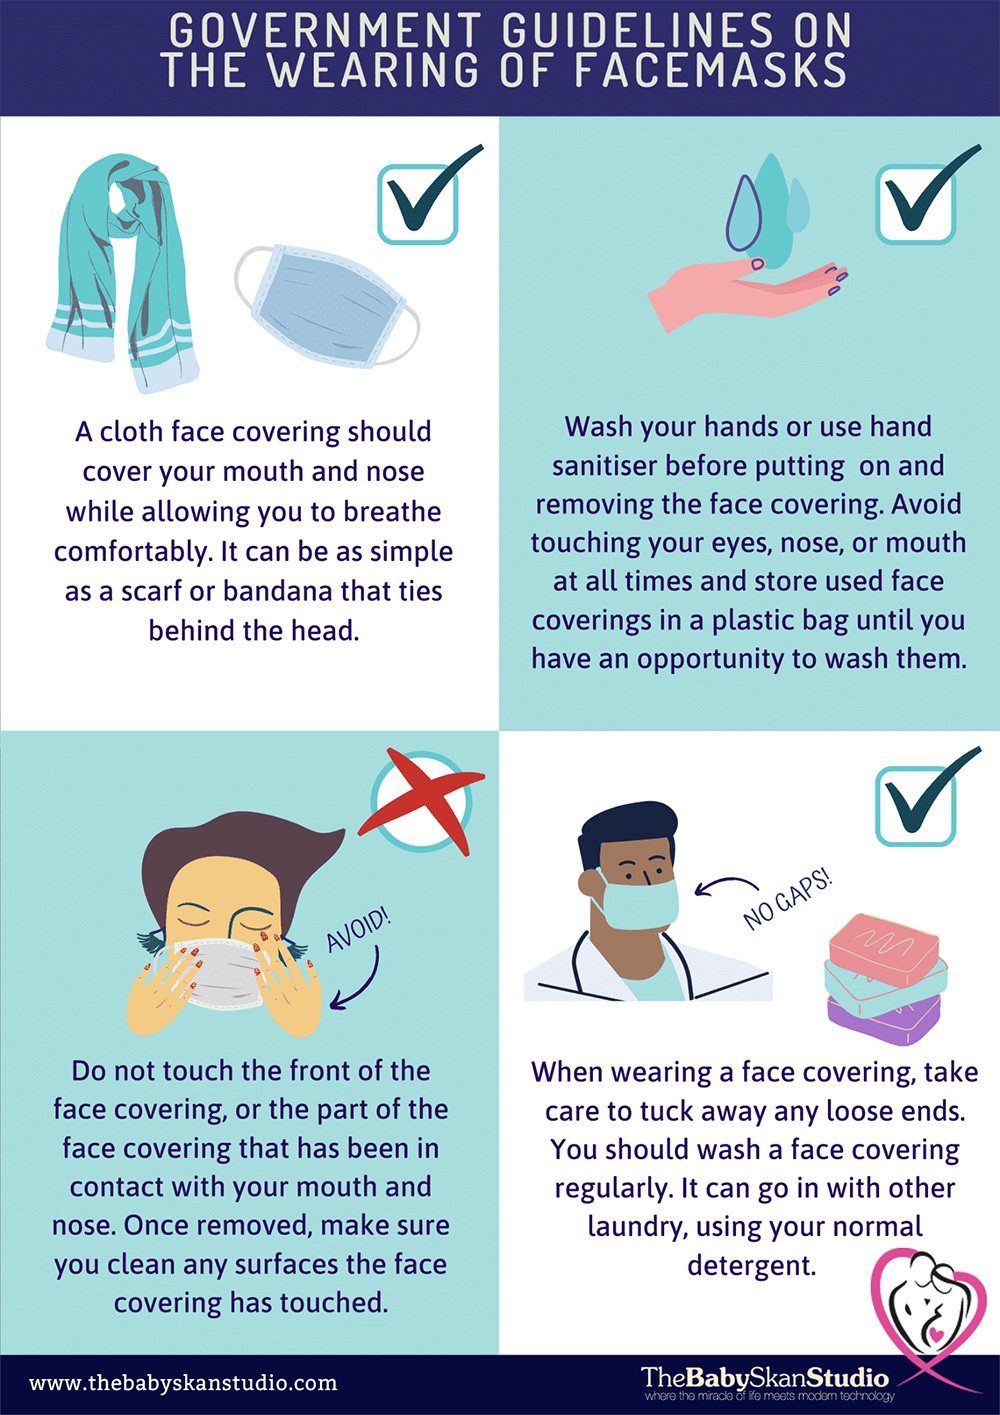 UK Government Guidelines for wearing a face mask